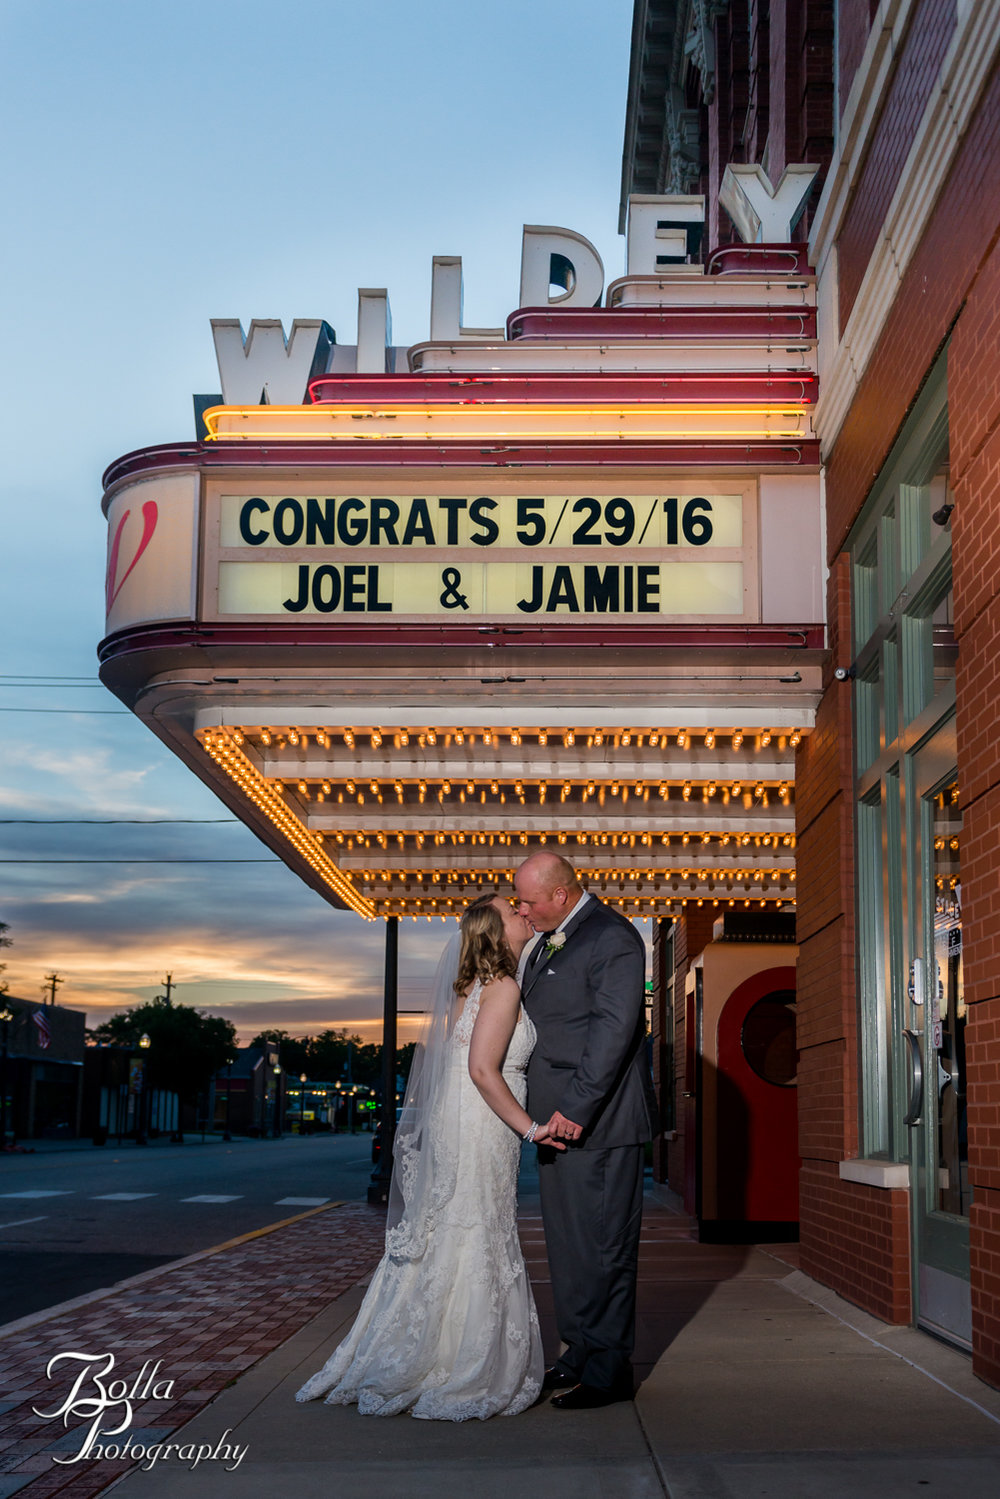 Bolla_Photography_St_Louis_wedding_photographer_Wildey_Theater_Edwardsville-0410.jpg